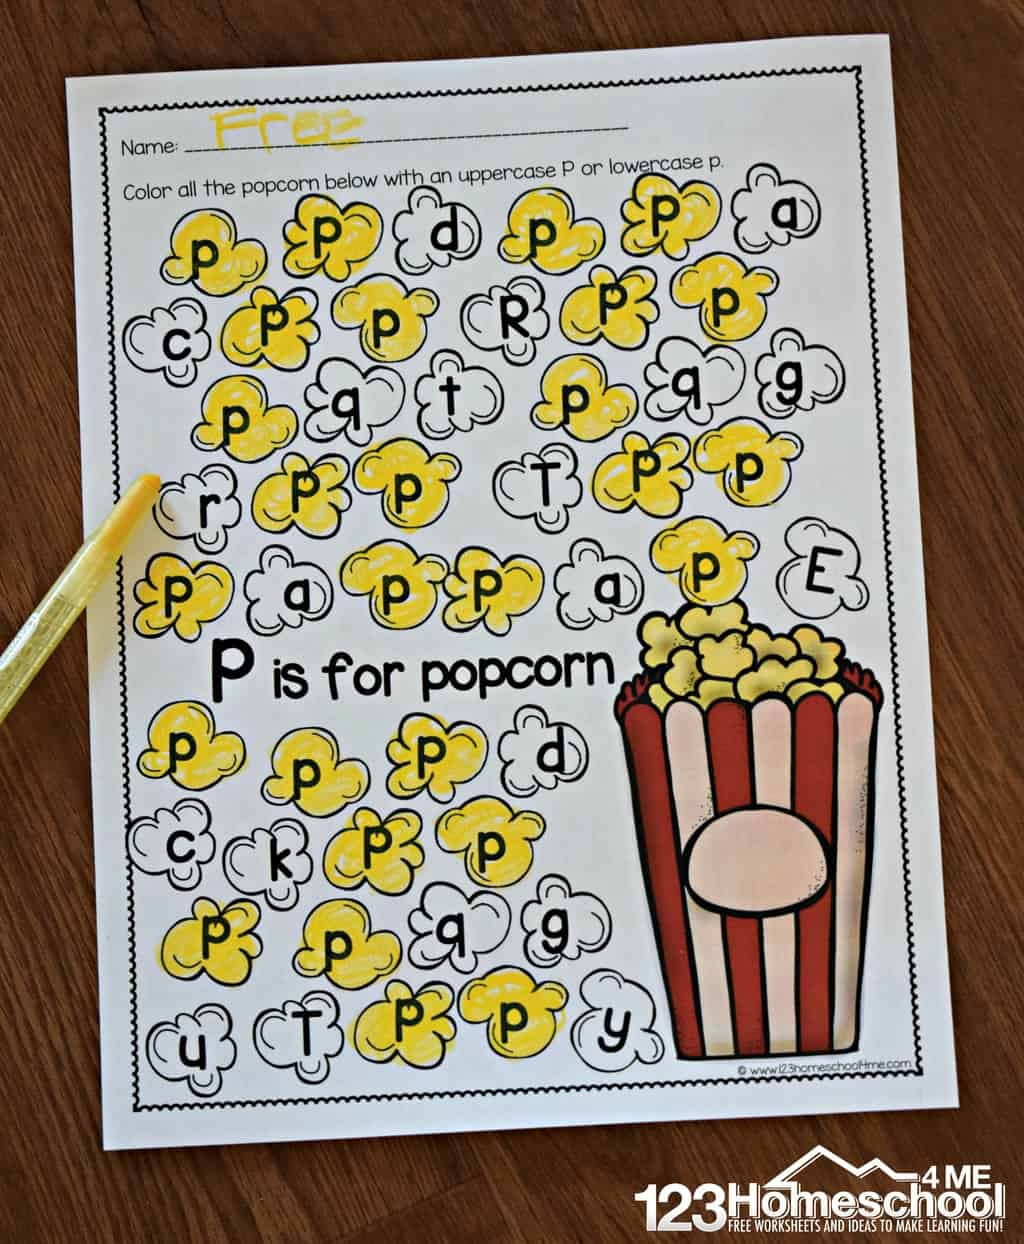 A To Z Letter Find   123 Homeschool 4 Me - Letter P Puzzle Printable